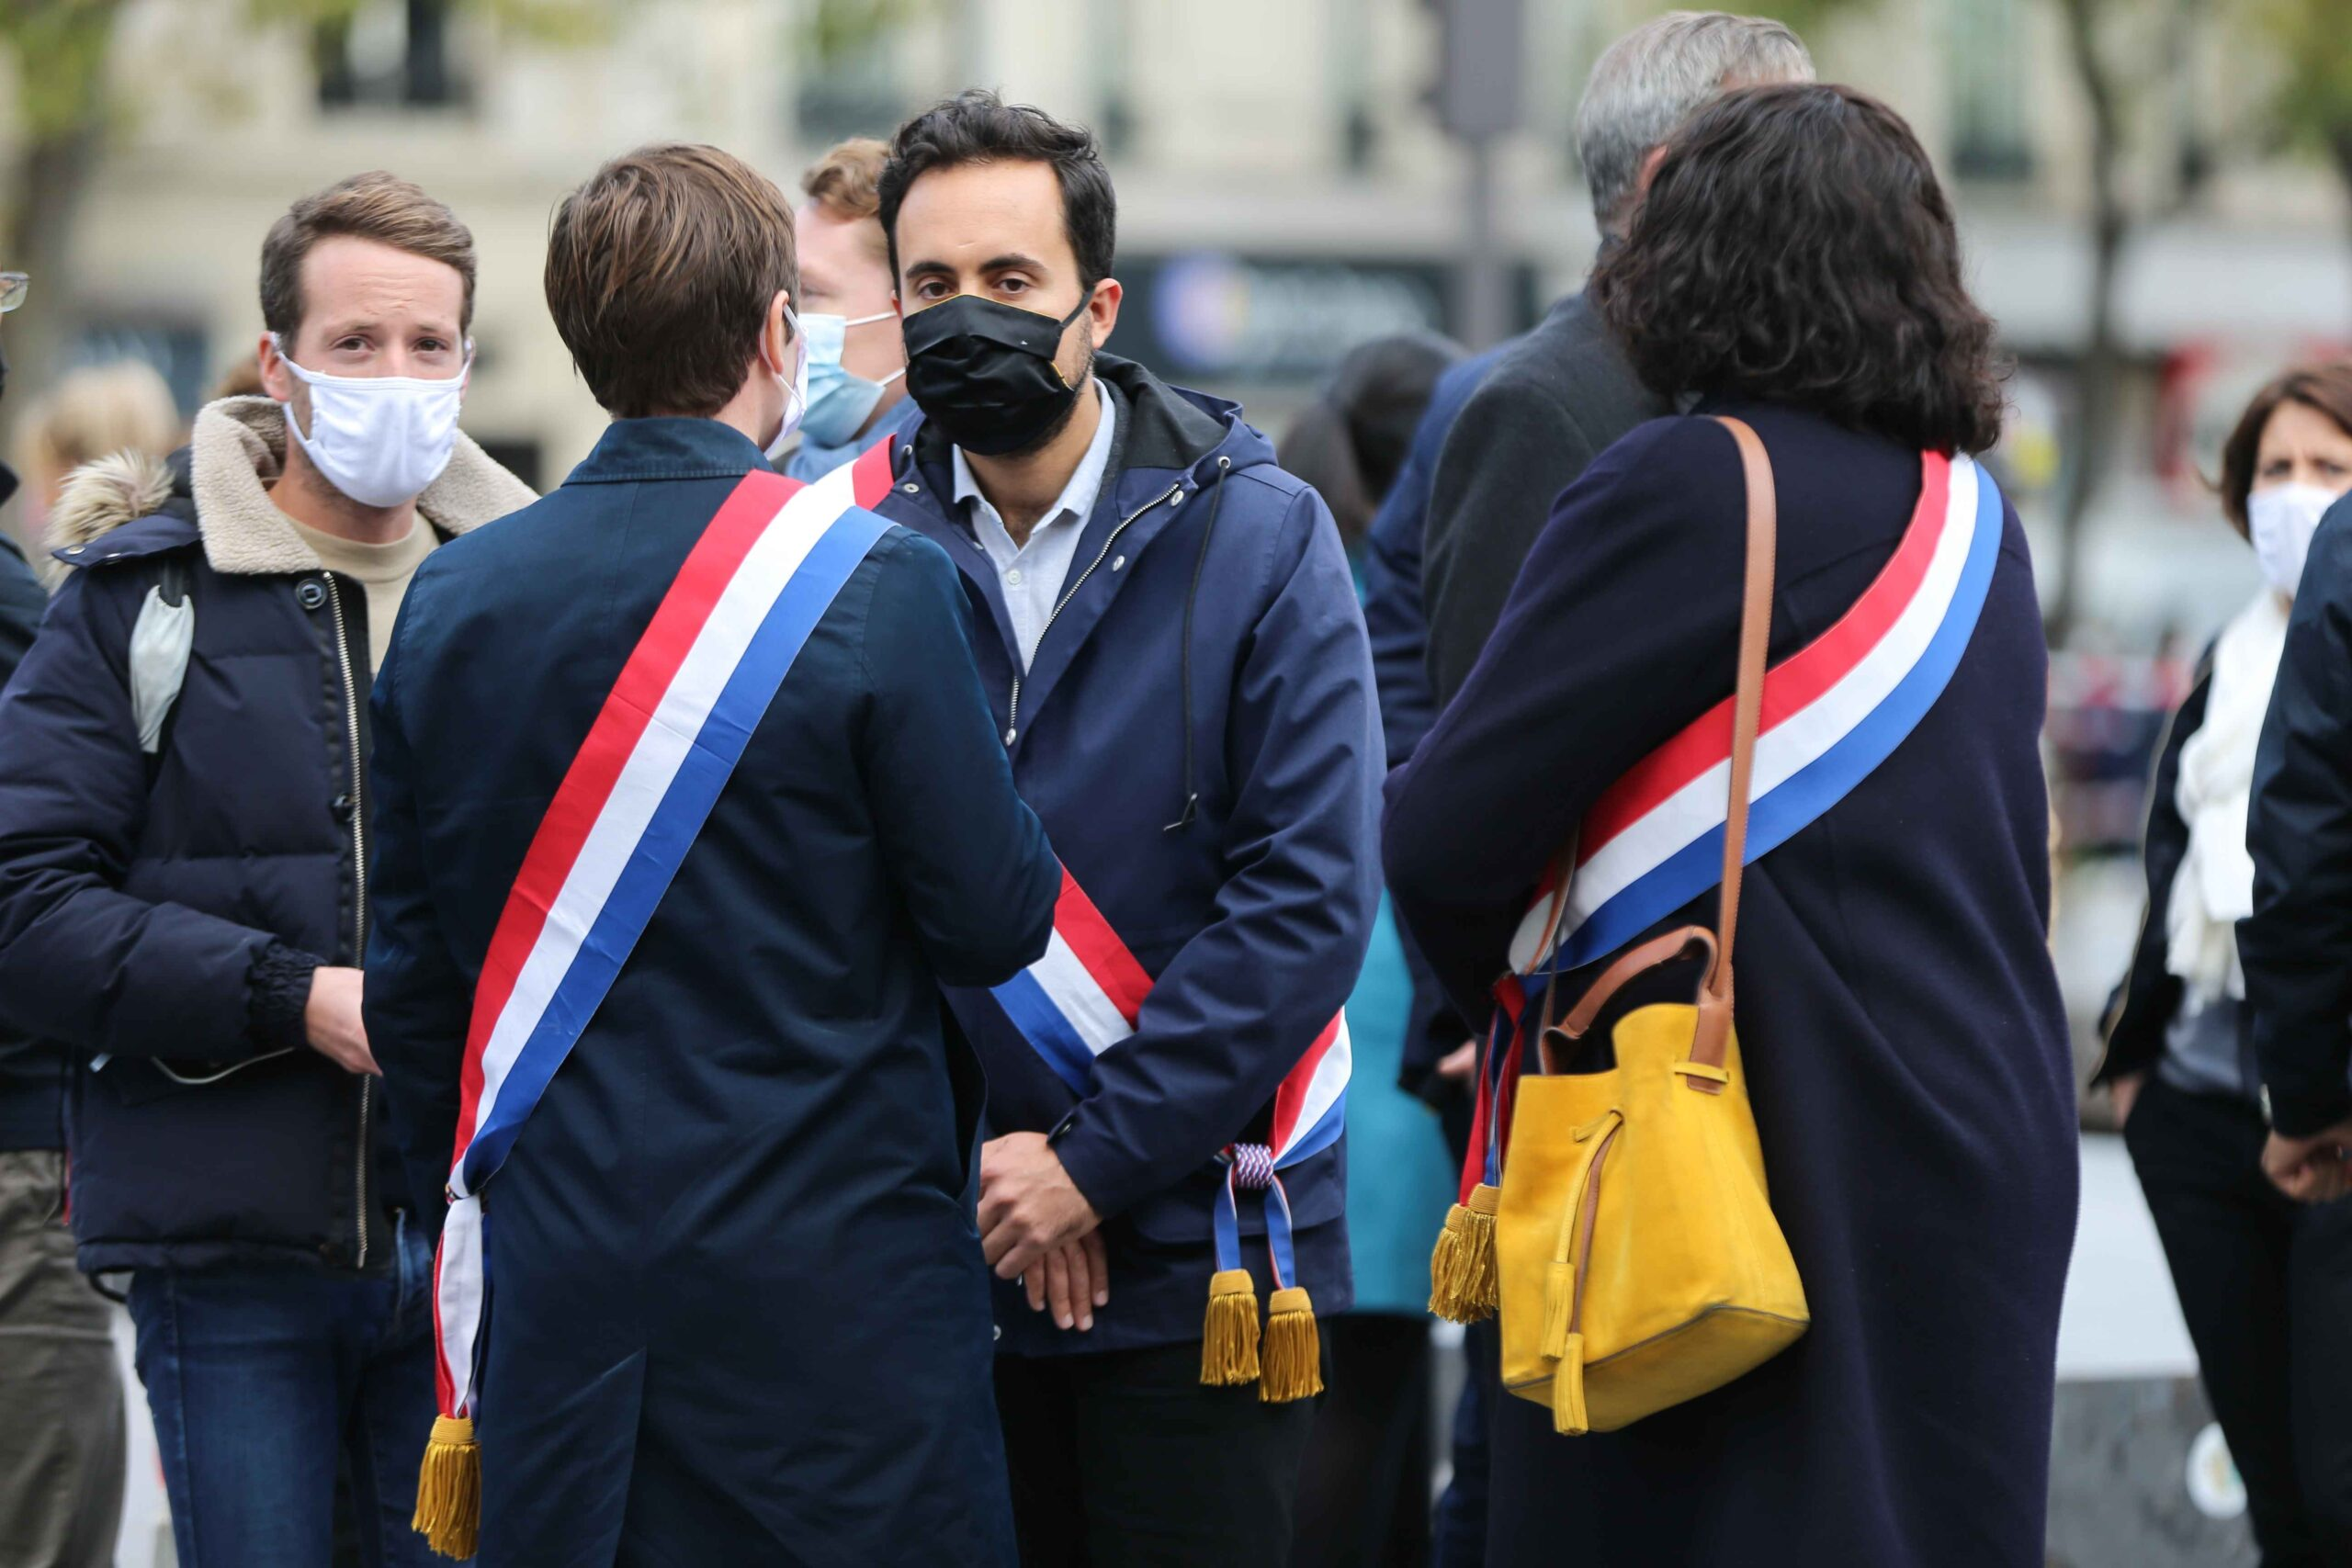 French centre-right La Republique en Marche (LREM) party member of parliament Mounir Mahjoubi  (2R) stands as people gather on Place de la Republique in Paris on October 18, 2020, in homage to history teacher Samuel Paty two days after he was beheaded by a